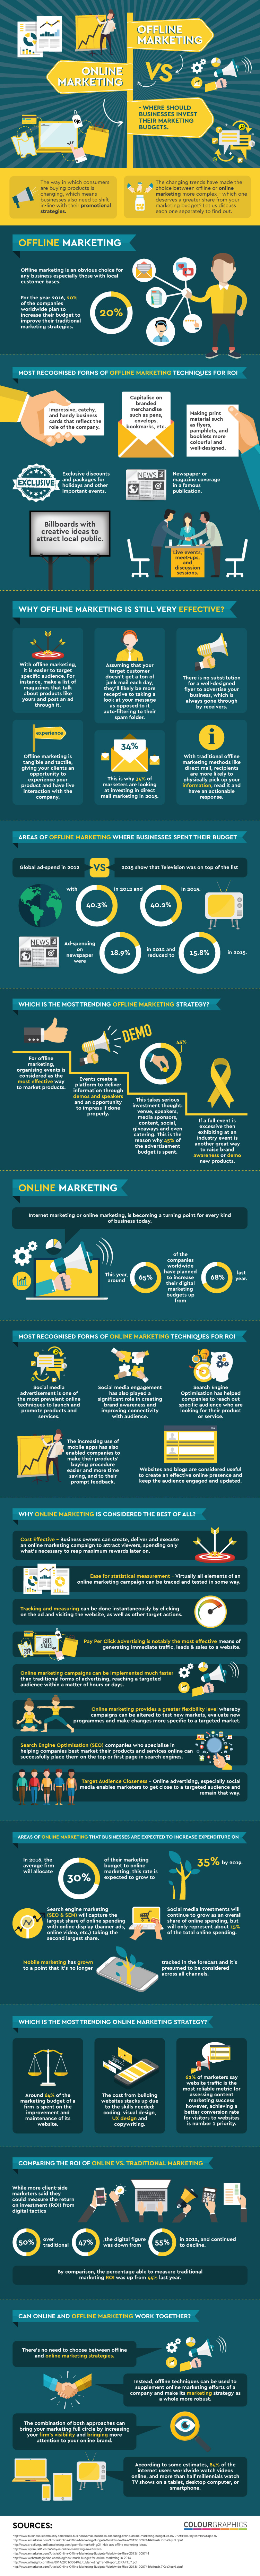 where-should-businesses-spend-their-marketing-budgets